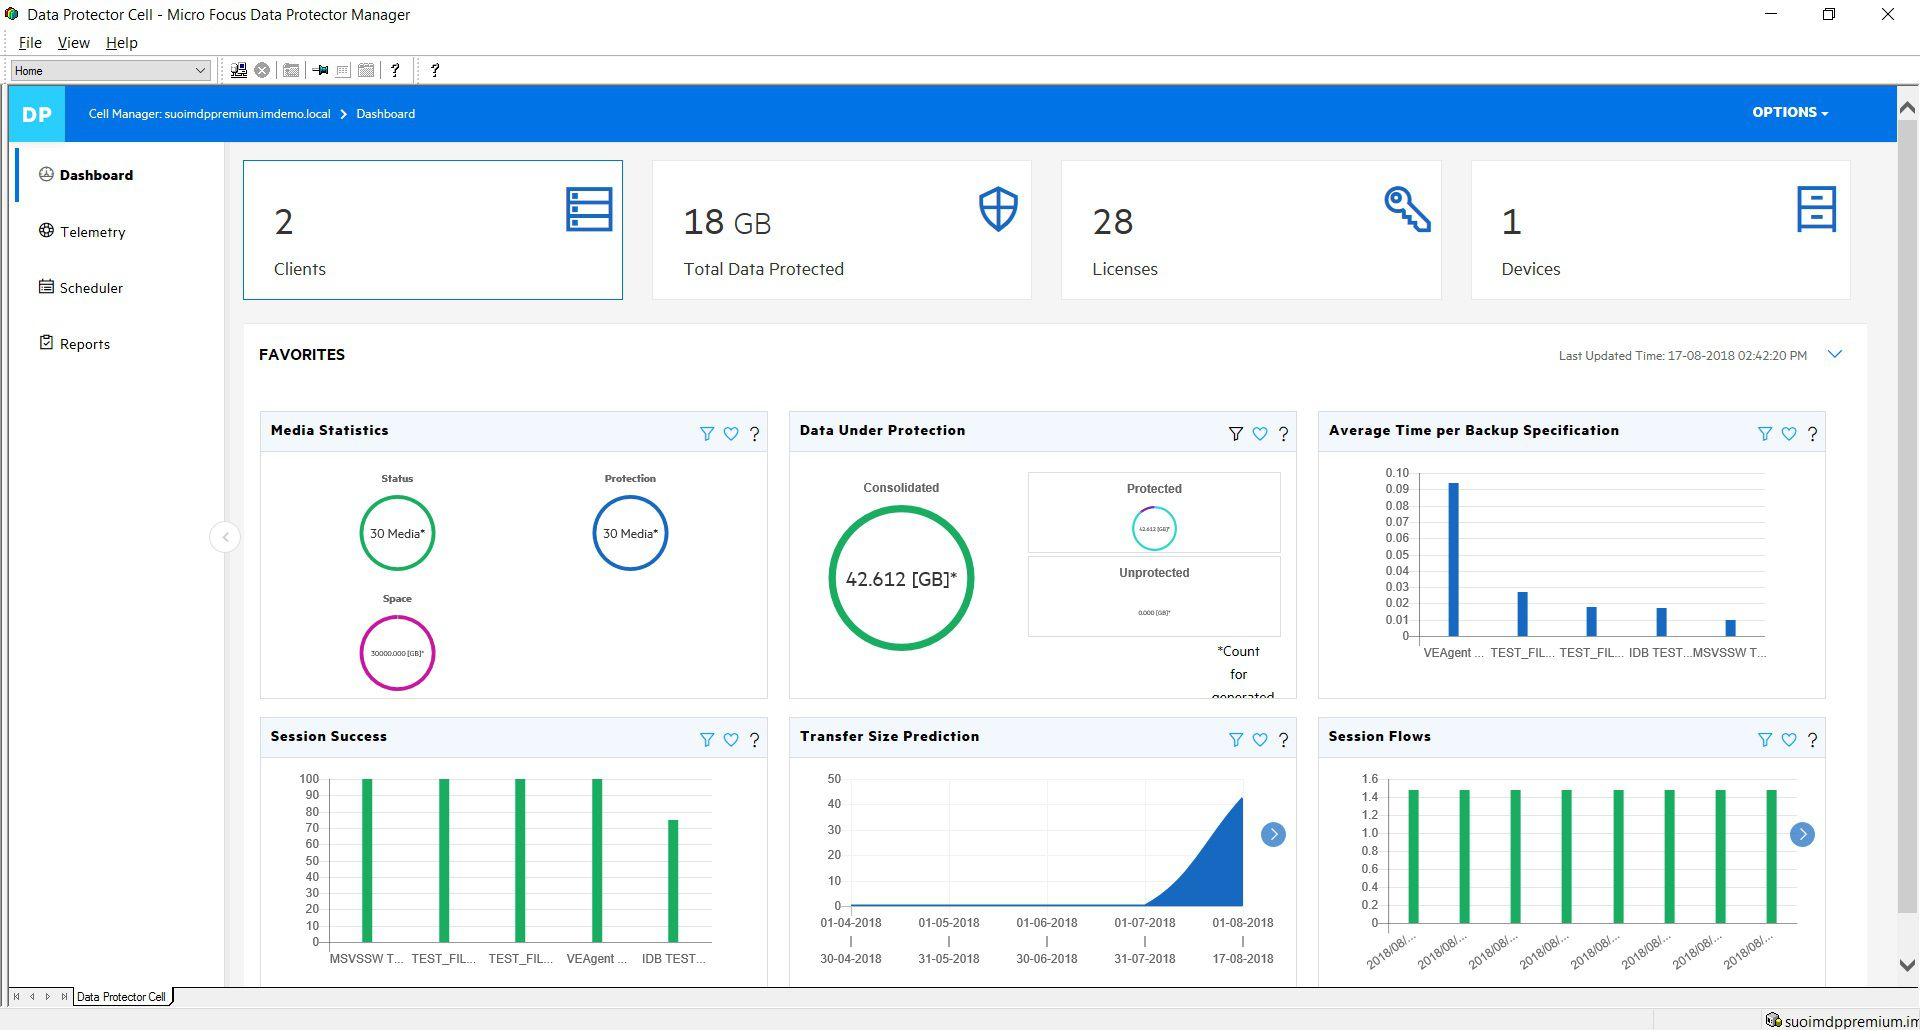 The Data Protector dashboard provides a single view of the heterogeneous backup environment